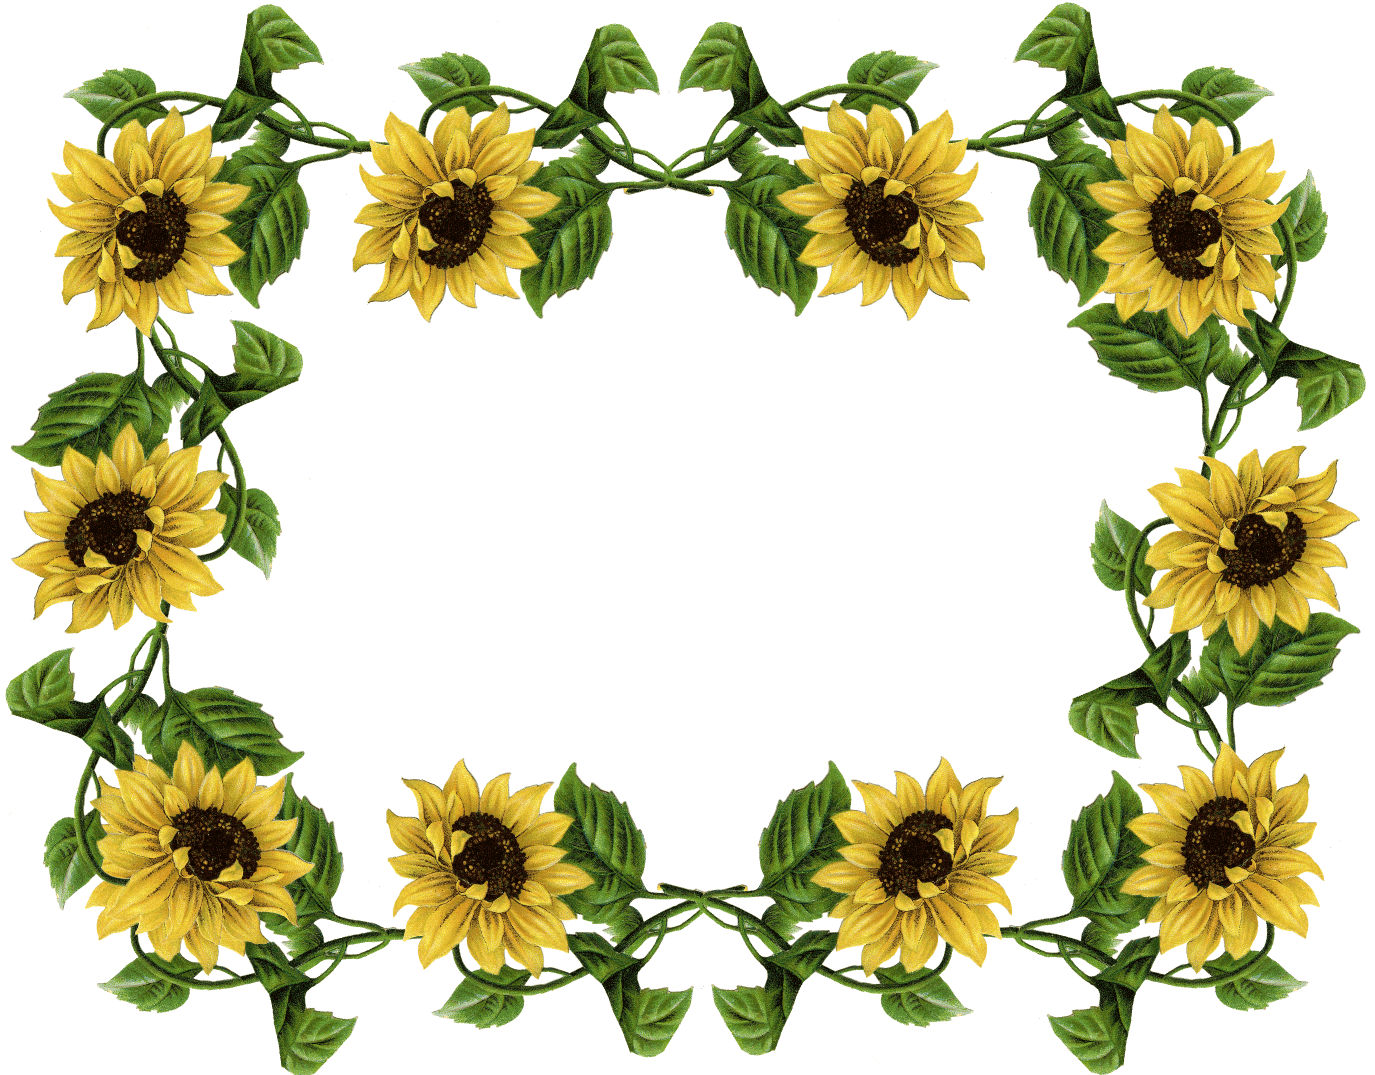 Sunflower Clipart Free Images